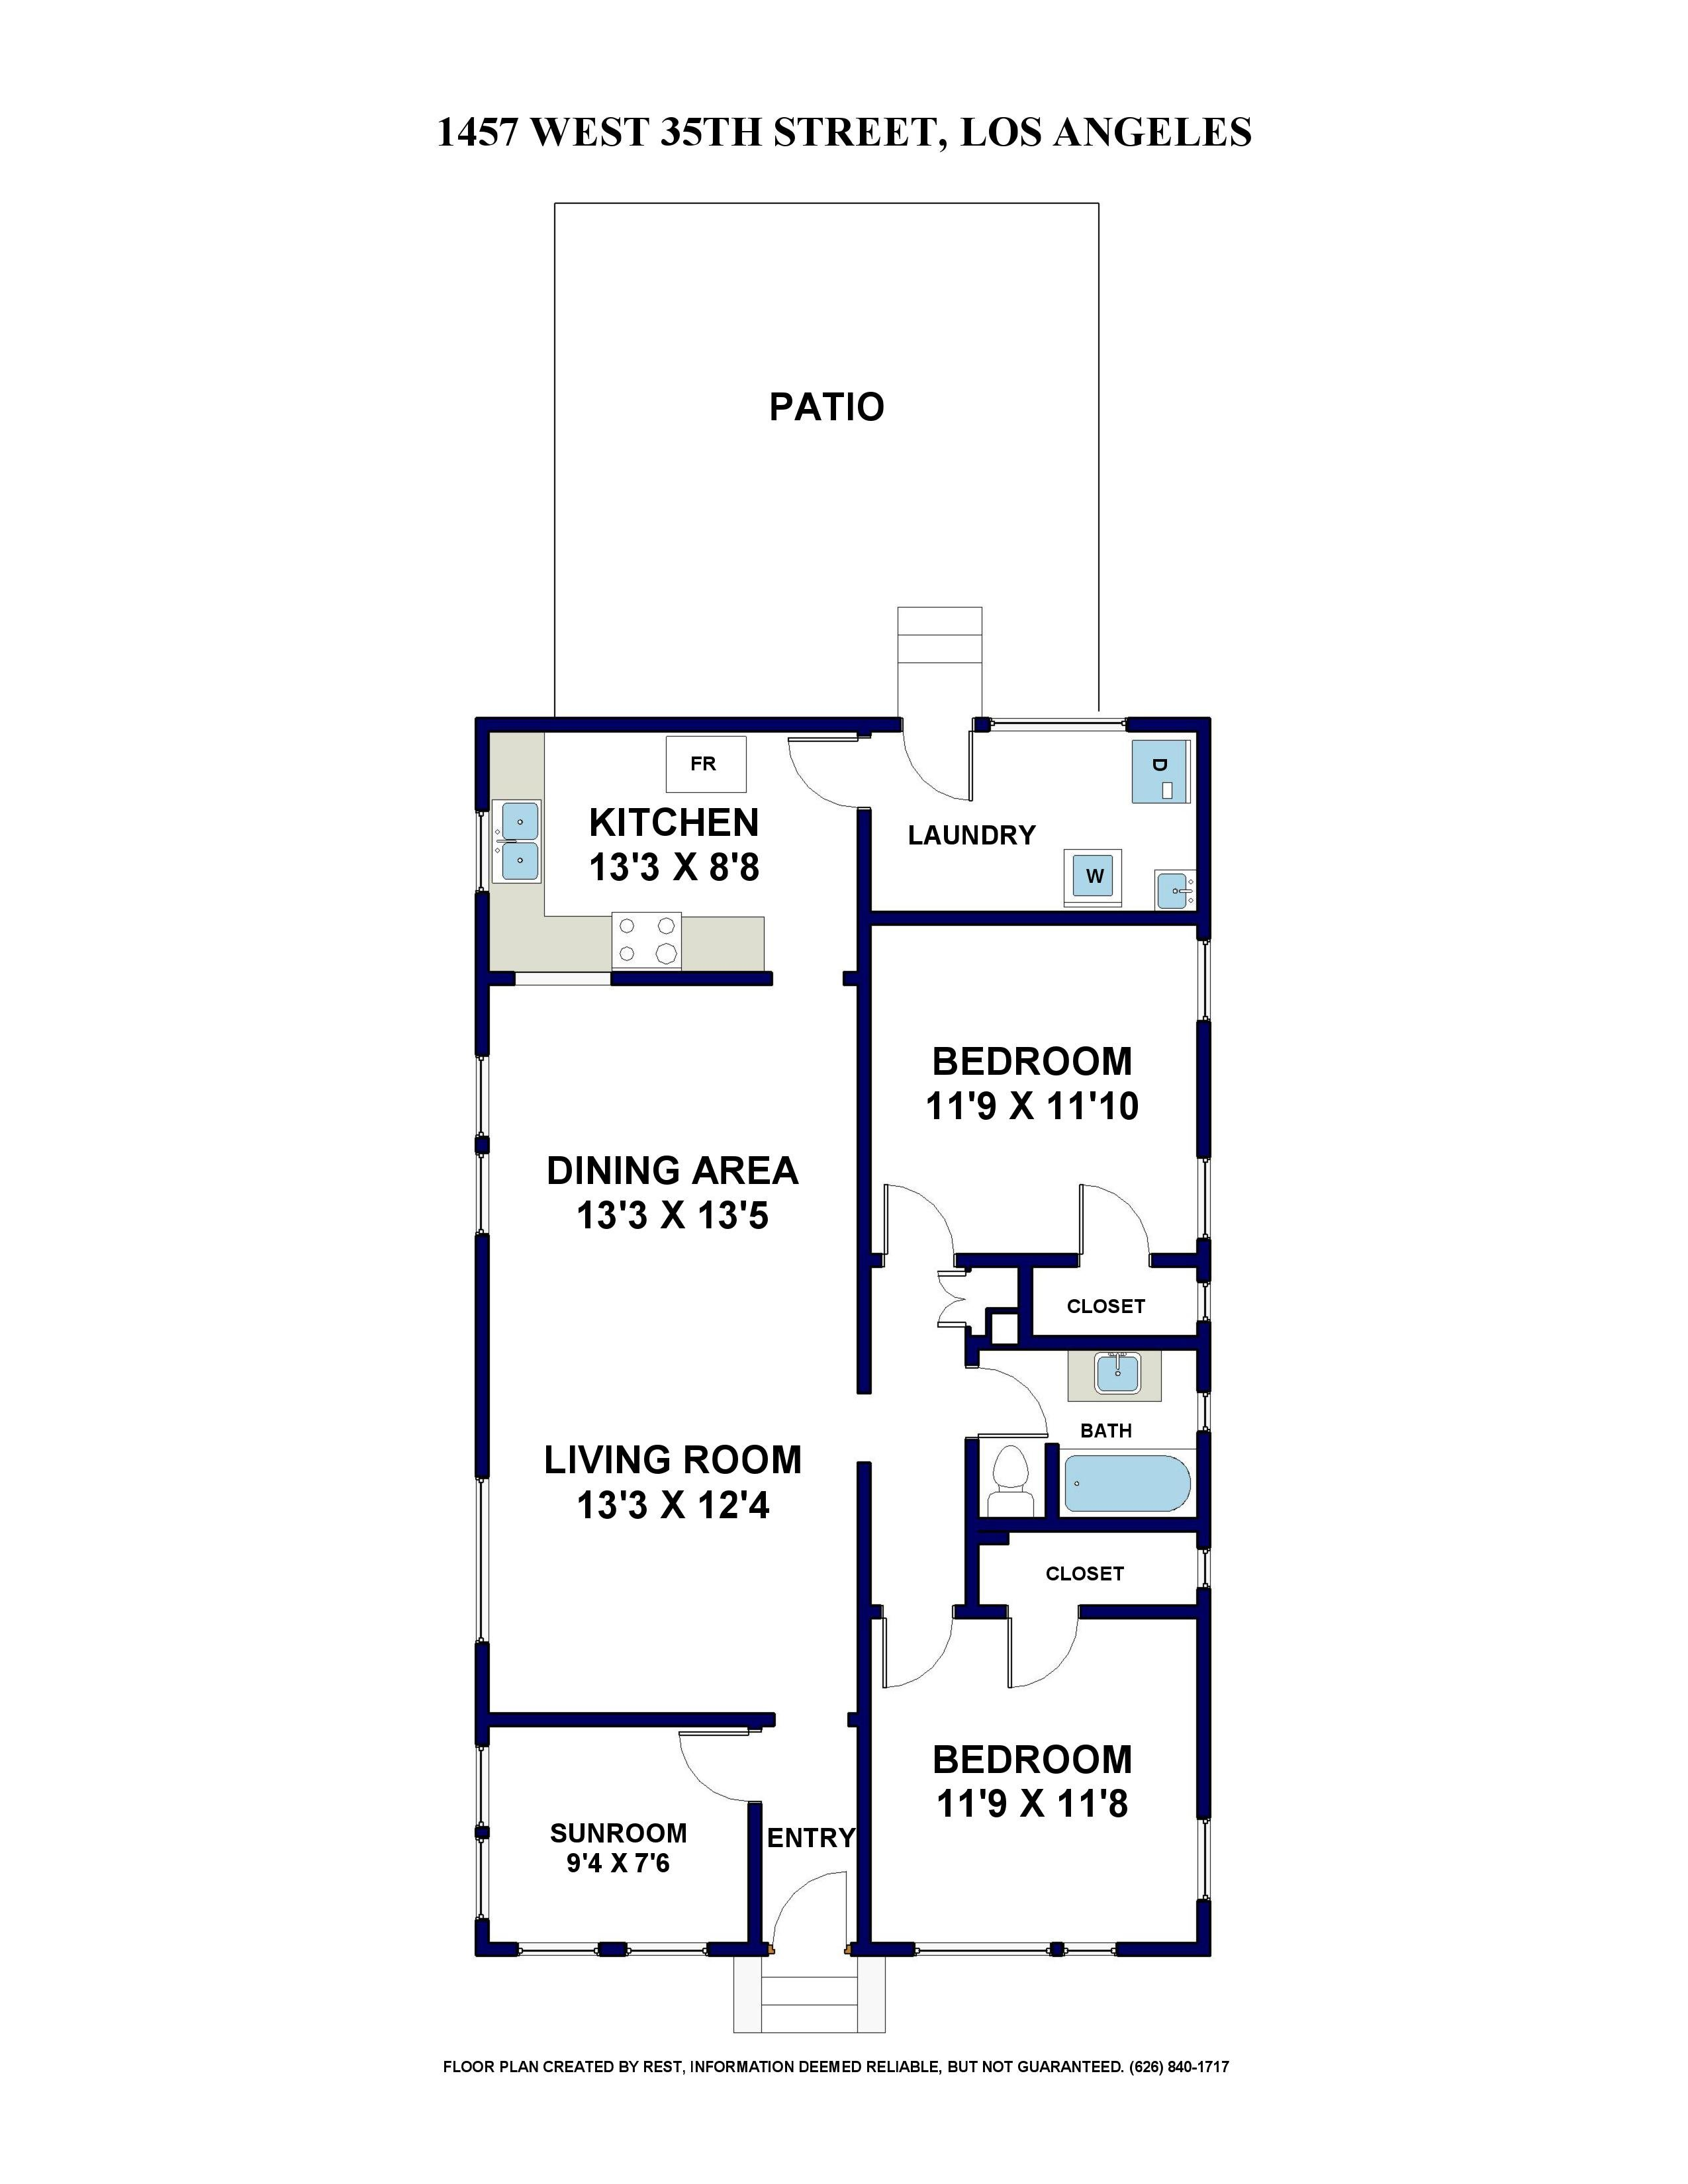 1457 W 35TH ST FLOOR PLAN